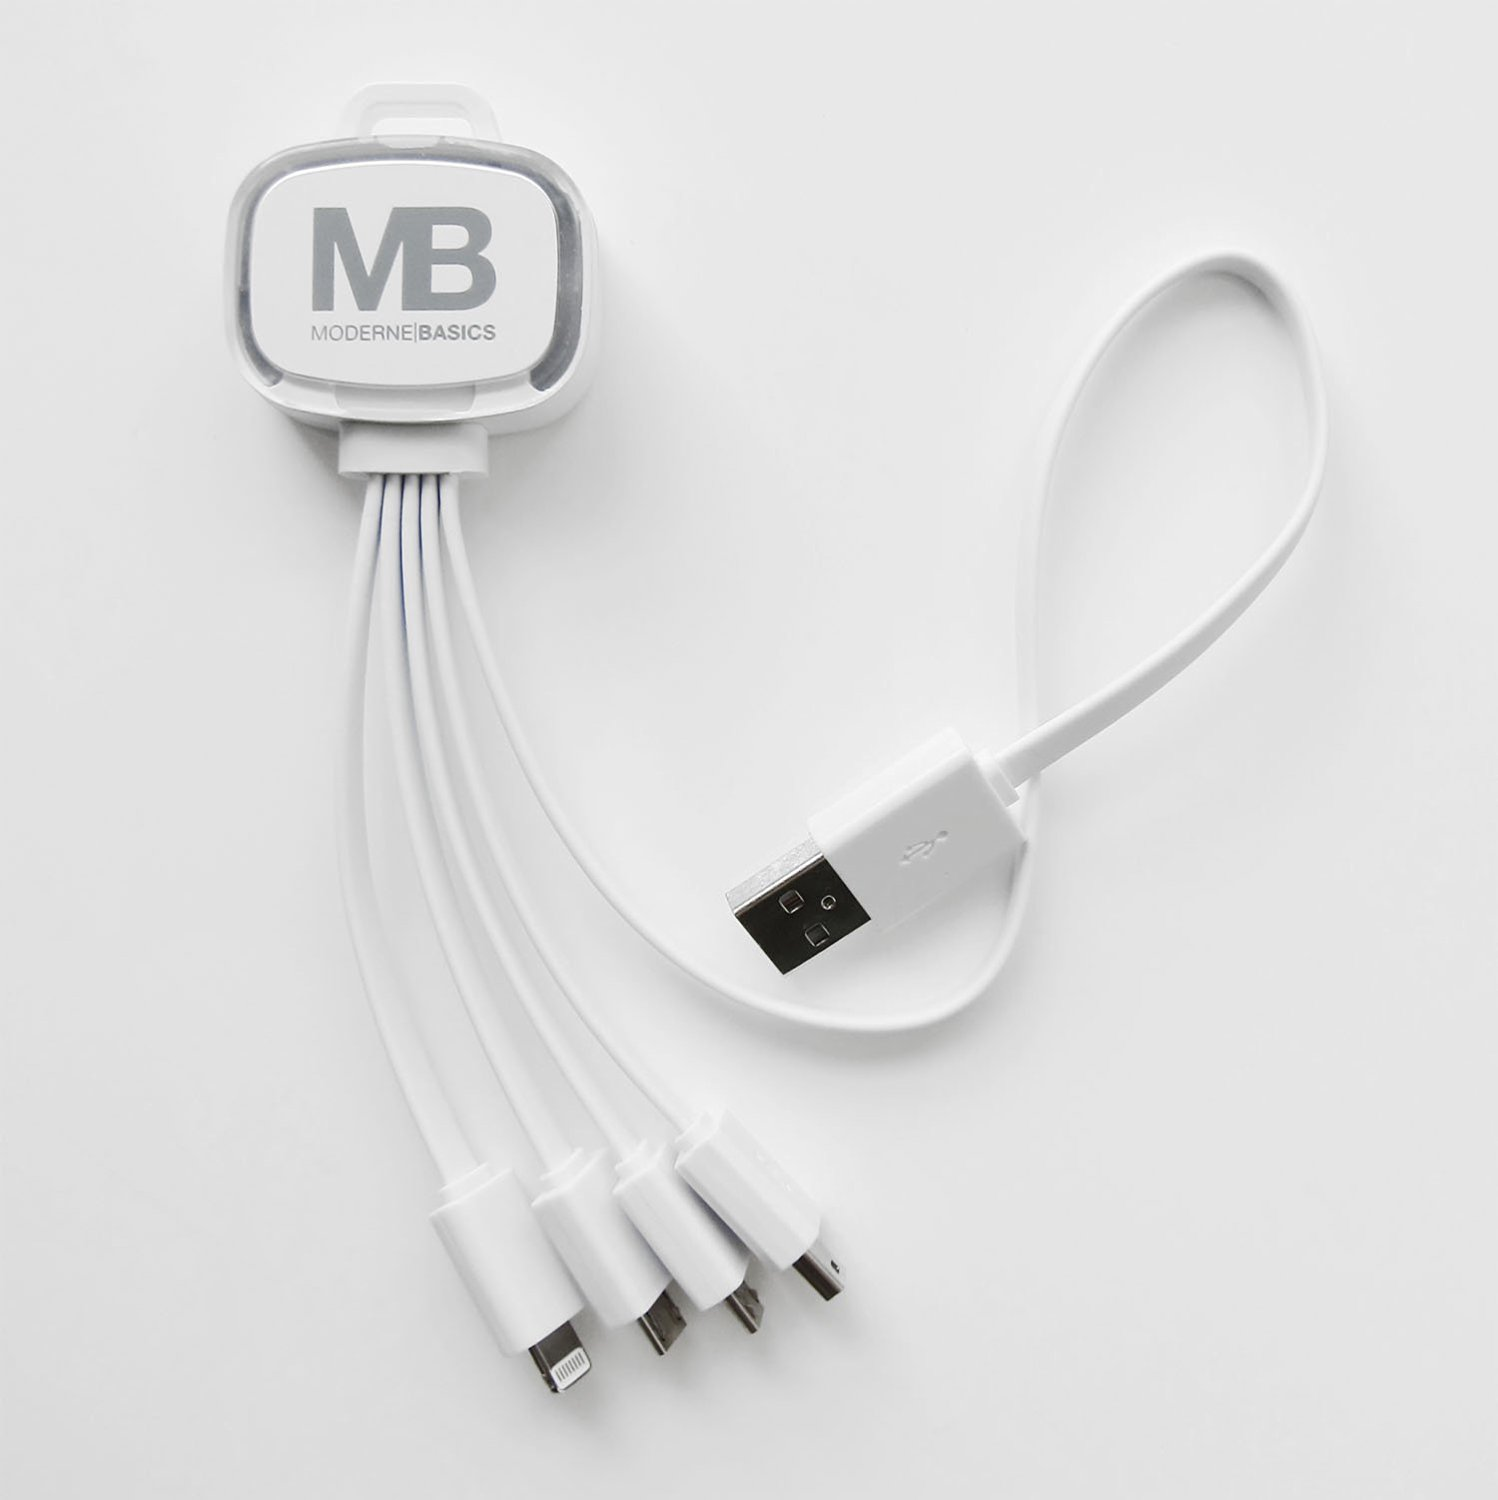 USB 2.0 4-in-1 Multiple Charging Cable w/ iPhone 6/5 8 Pin Flash LED Lightning (with Data), 2 Micro USB, 1 Mini USB Connector (Multi Color LED Lit) (White 1 Pack)